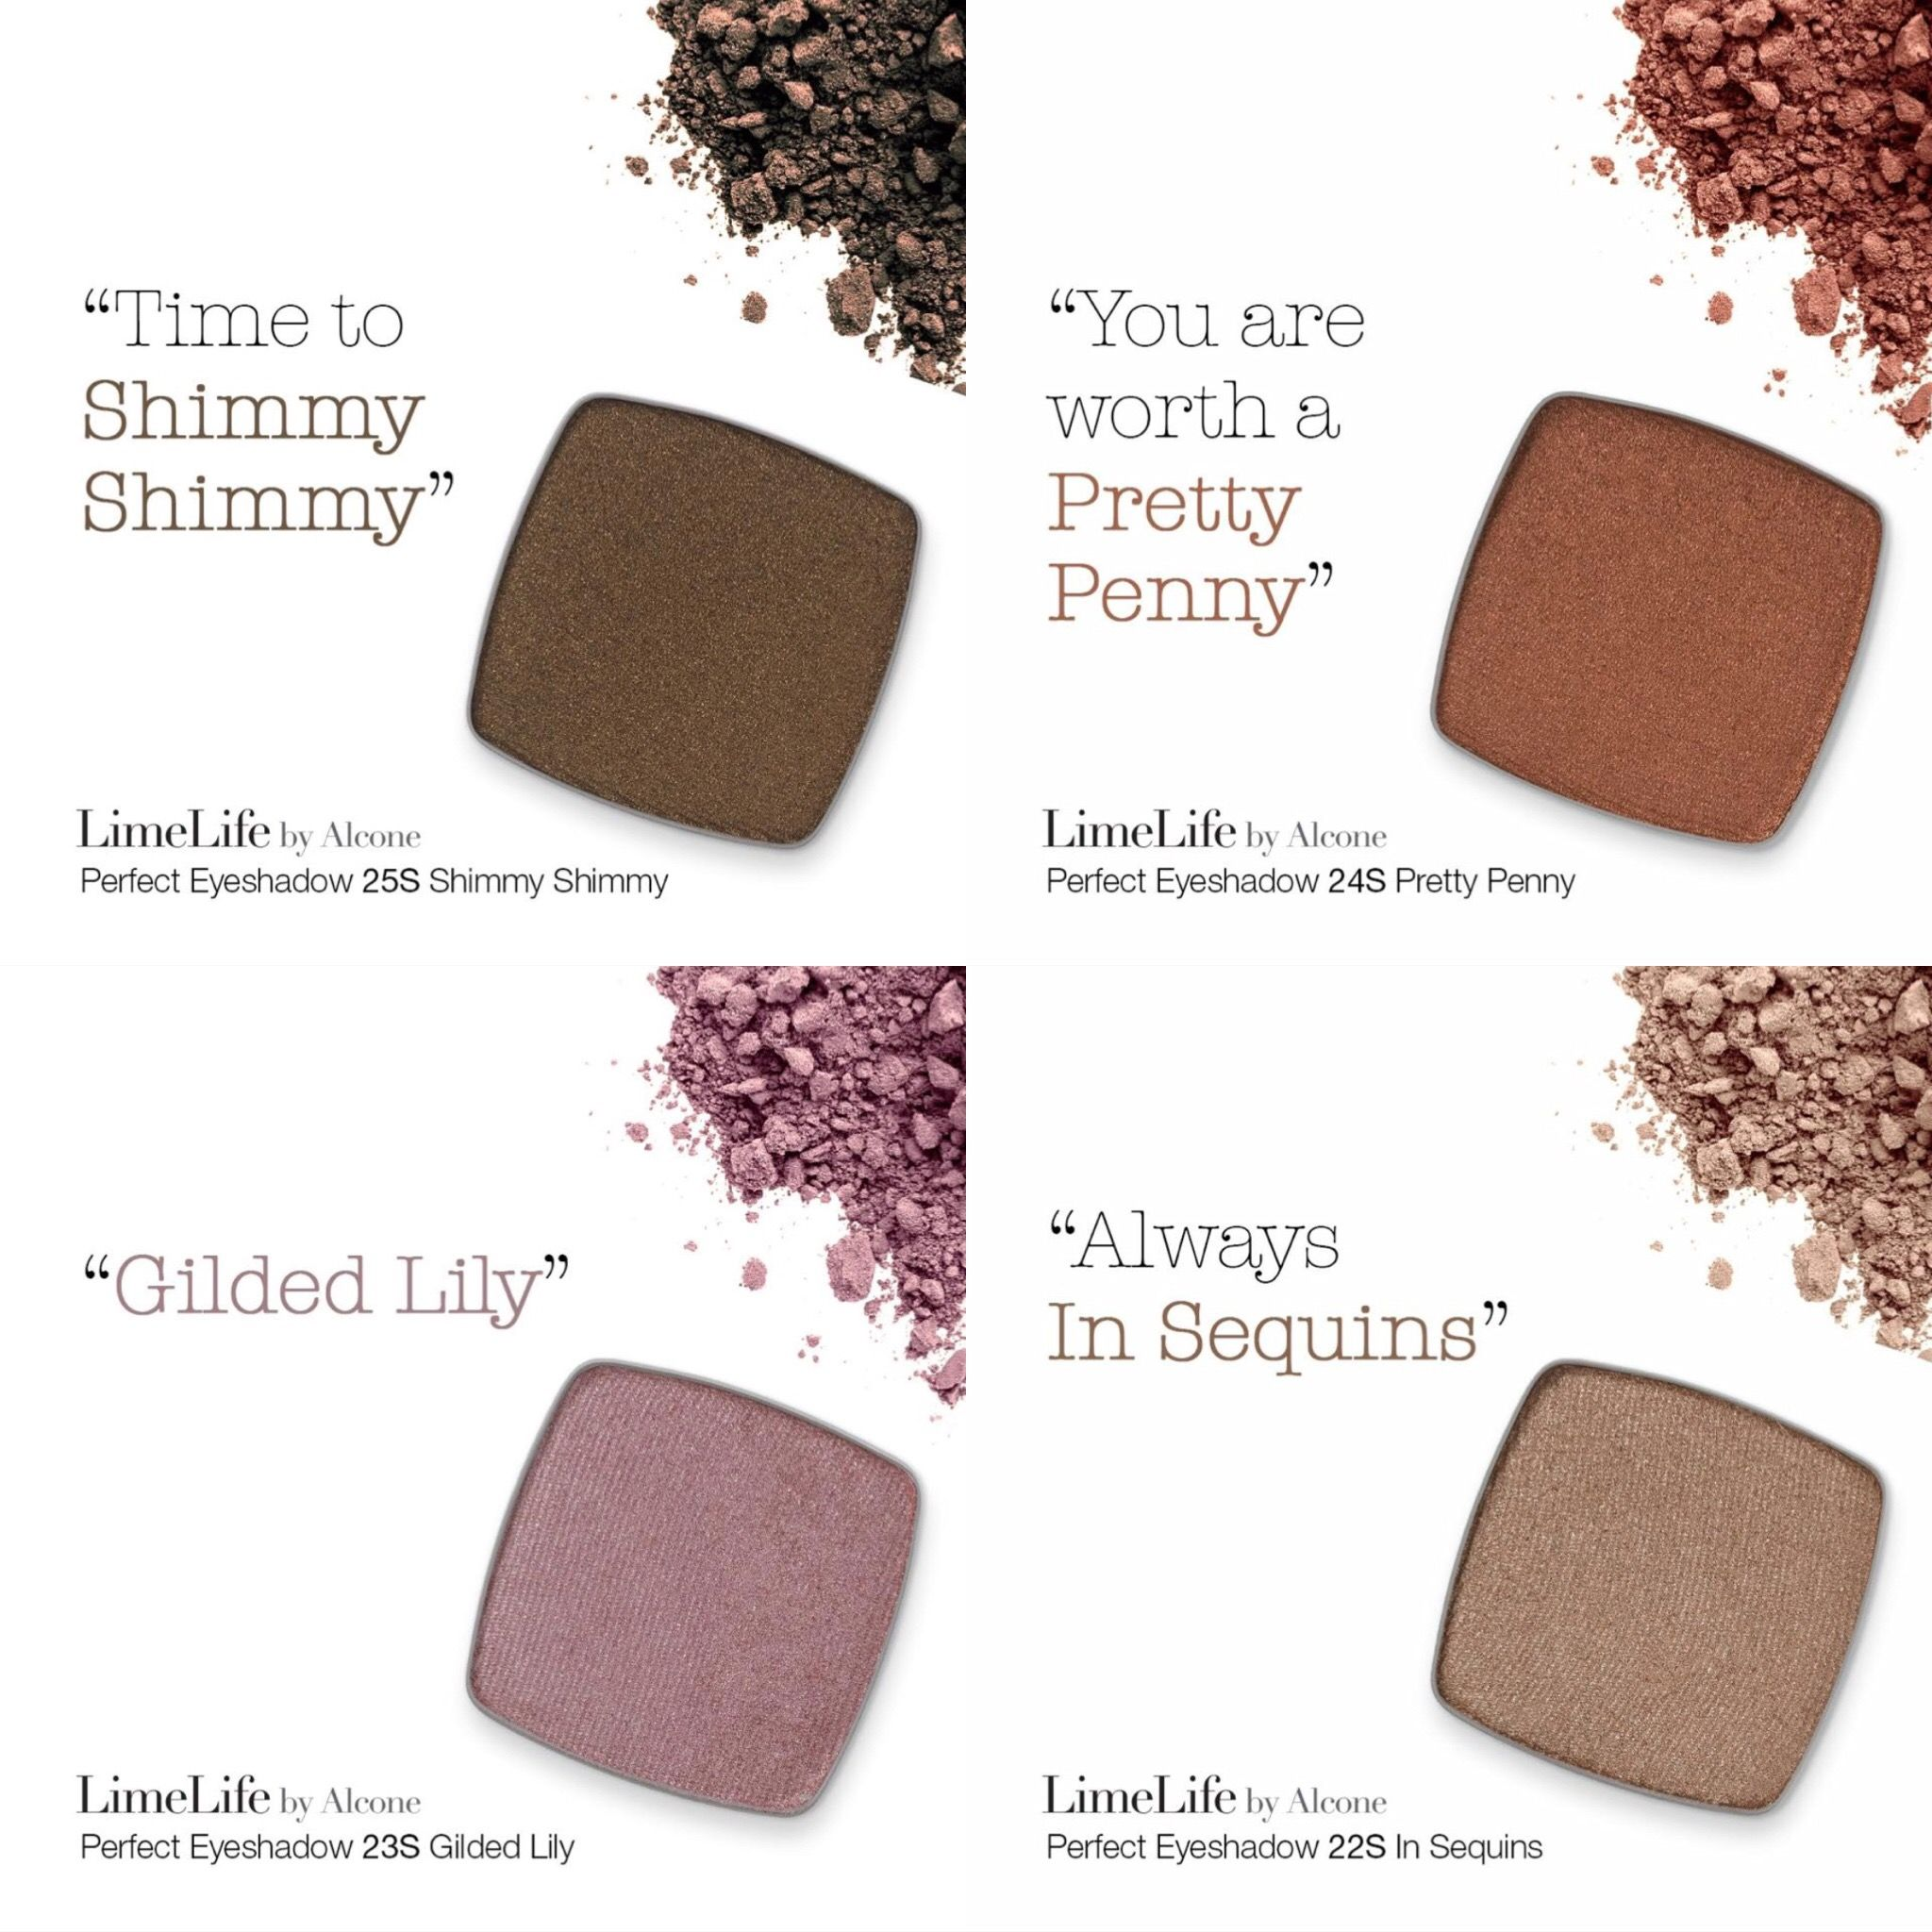 New Limelife by Alcone eye shadow colors. Still same